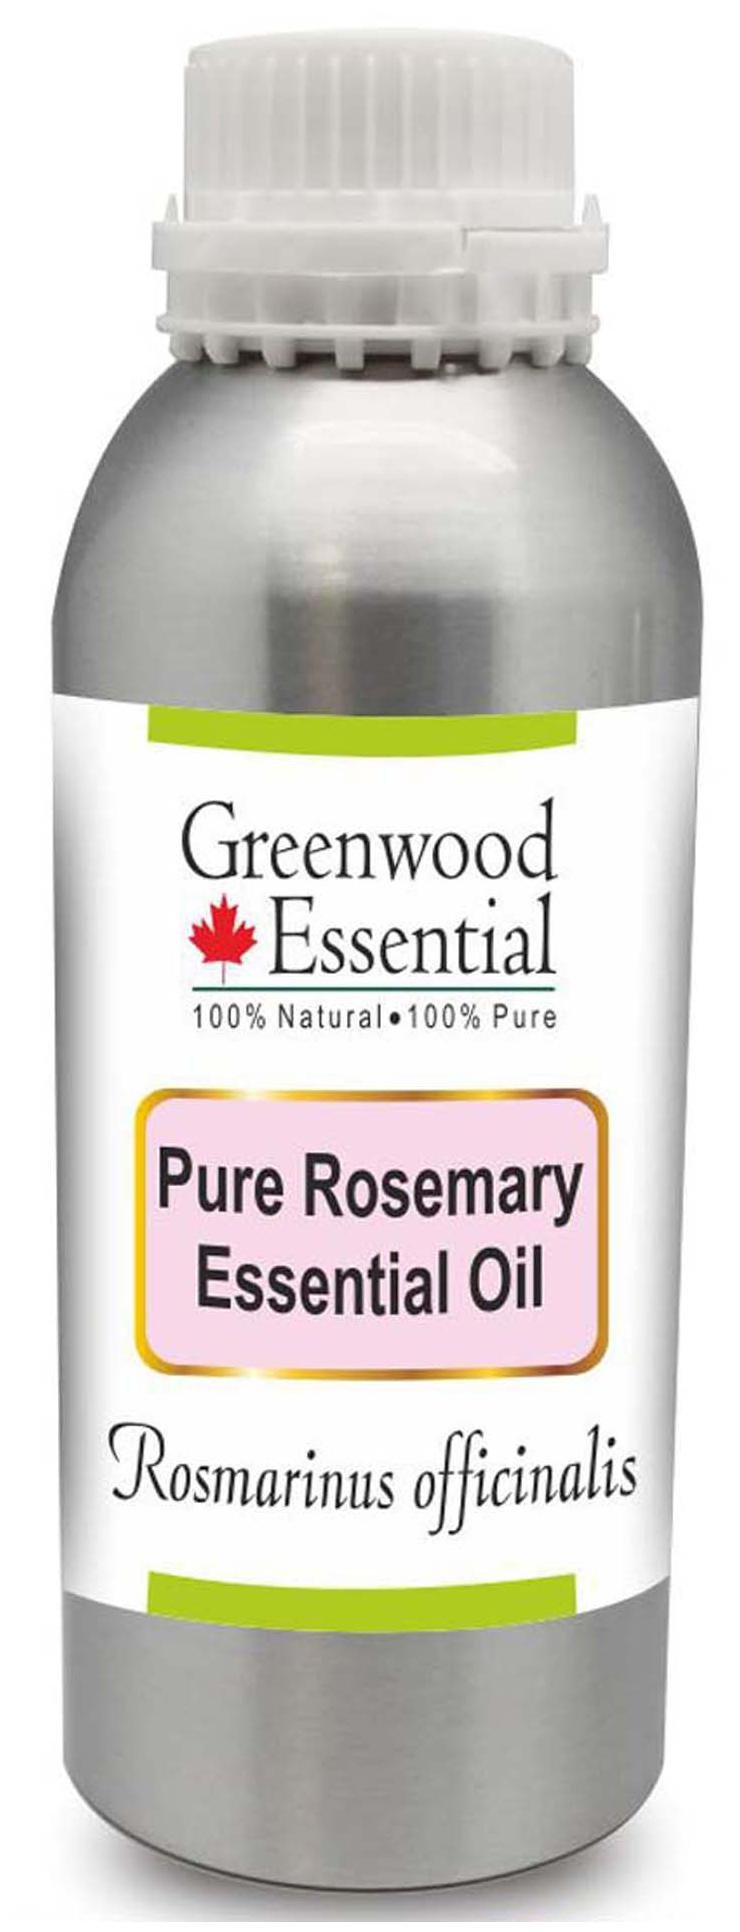 Greenwood Essential Pure Rosemary Essential Oil (Rosmarinus officinalis)  100% Natural Therapeutic Grade Steam Distilled 630ml